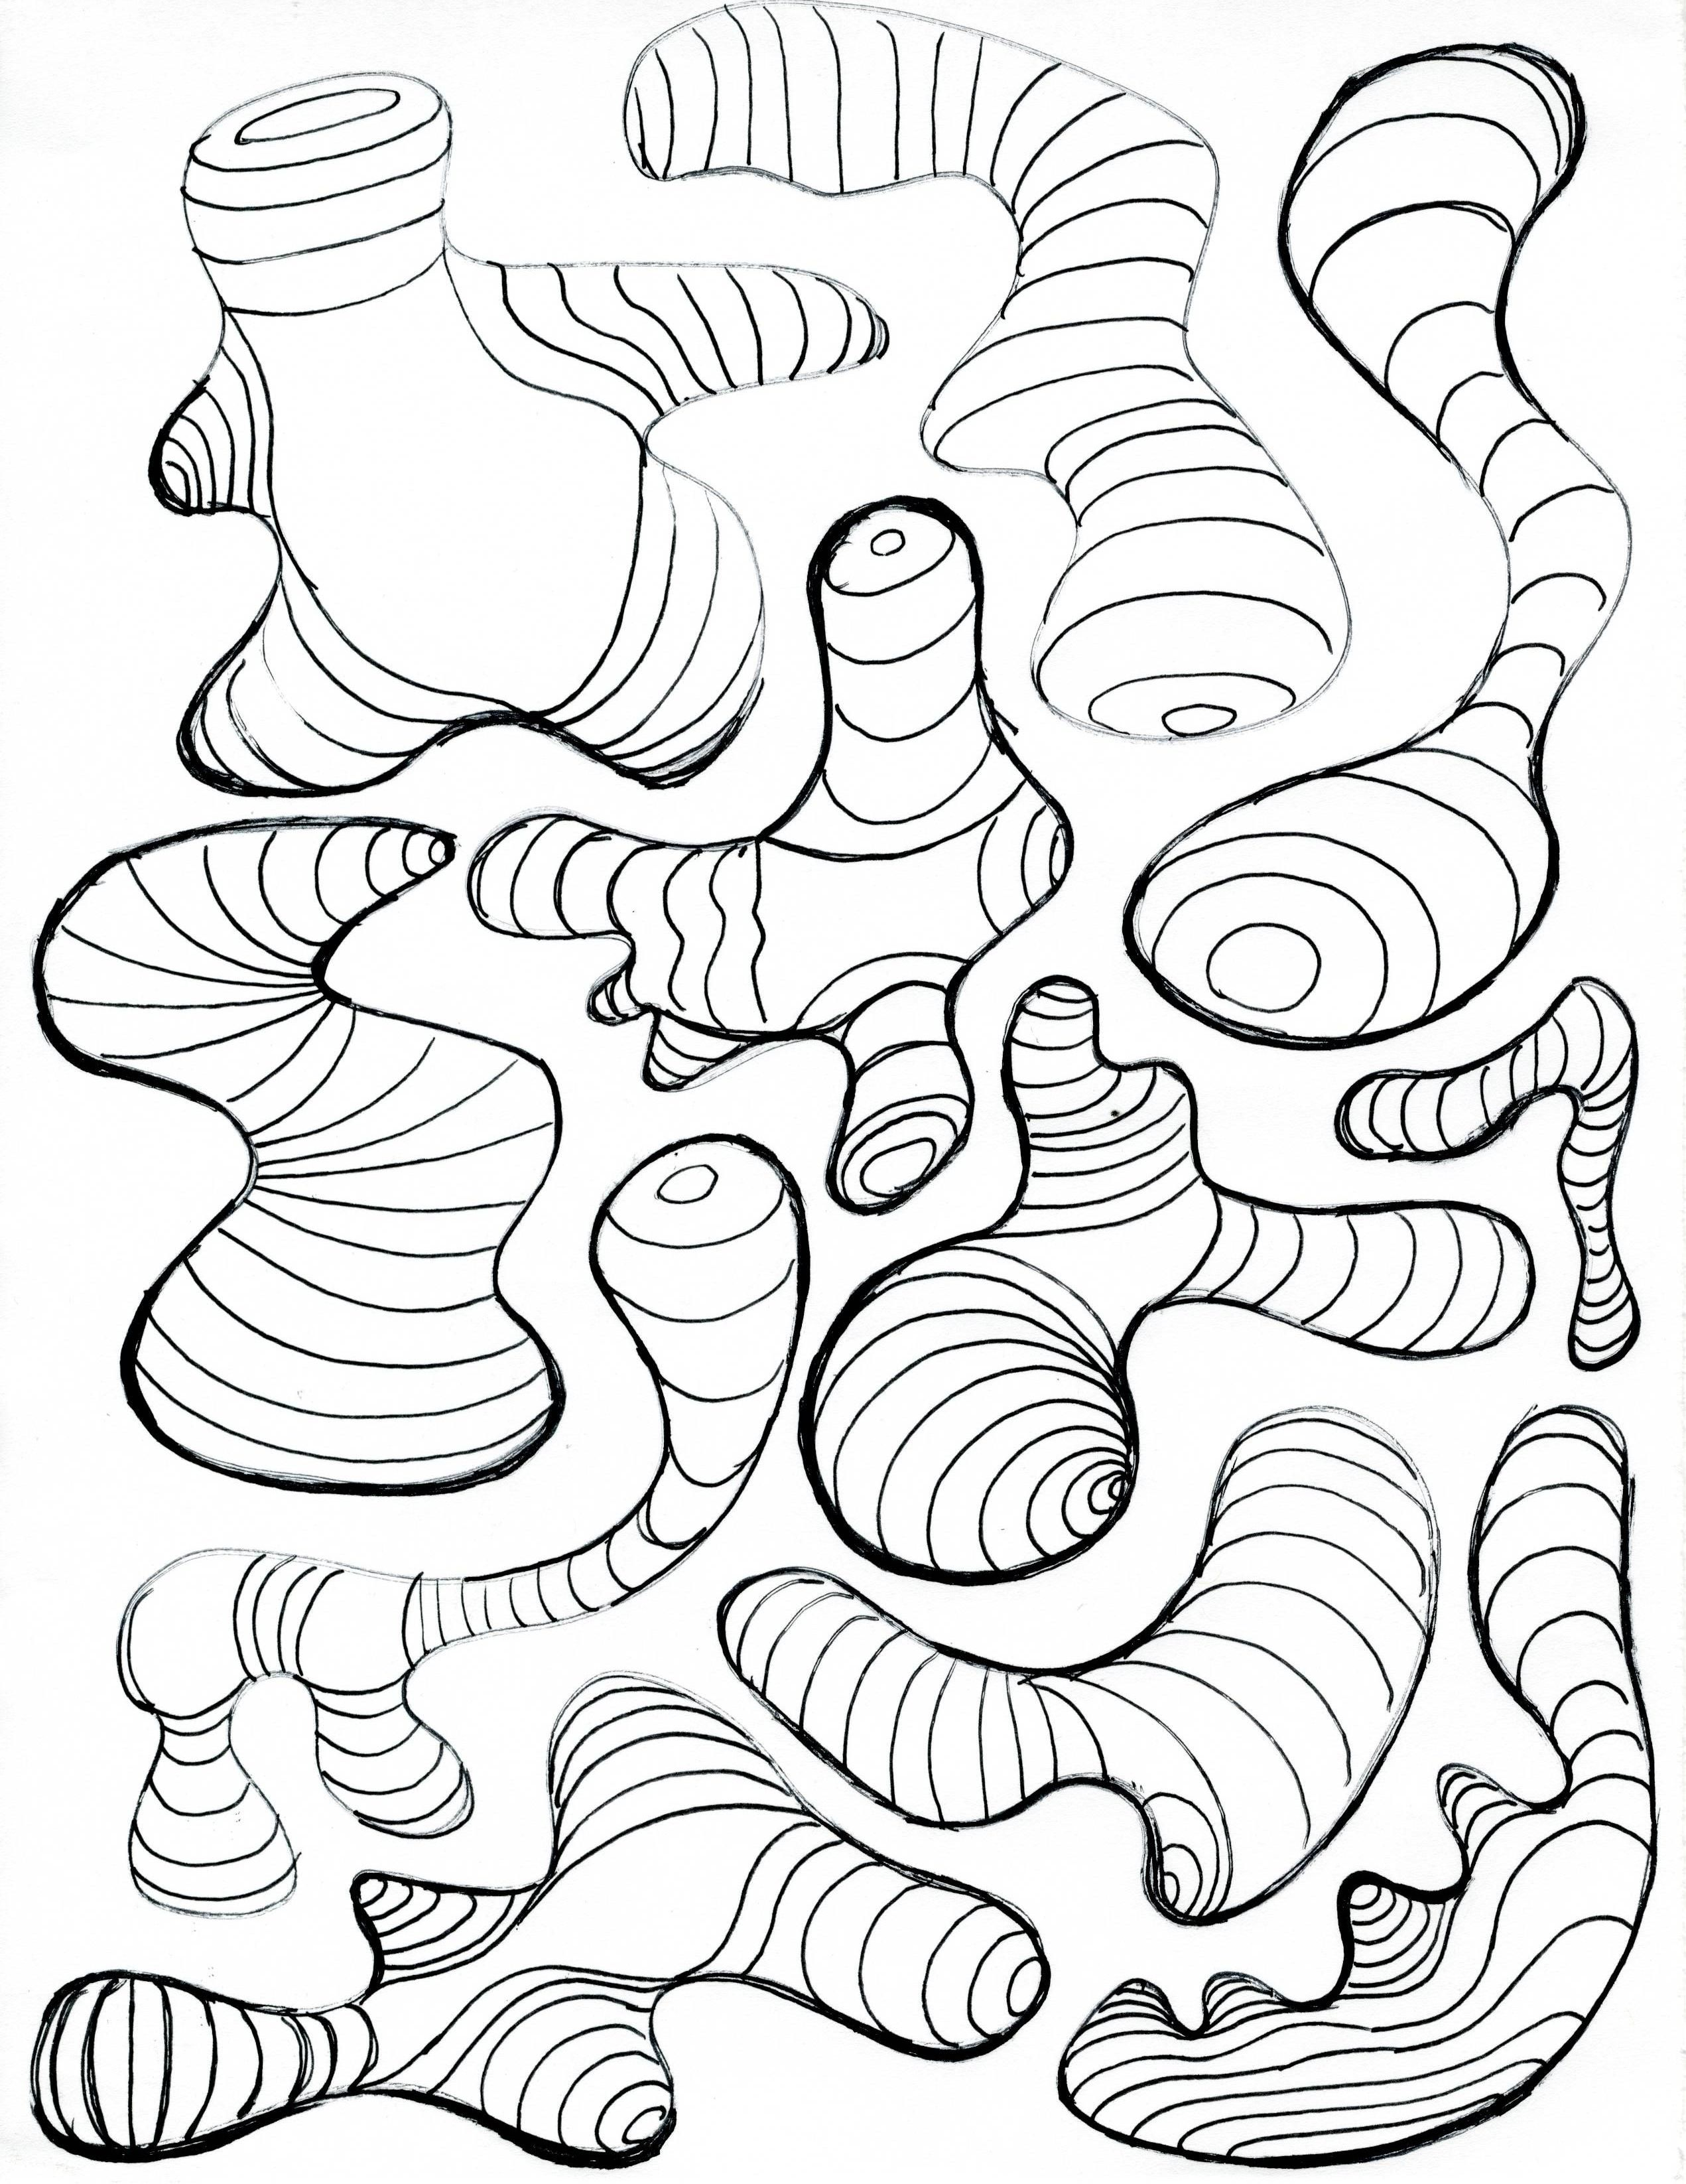 Herpaderpastein Page1 Jpg 2542 3292 Line Art Projects Contour Line Art Cross Contour Line Drawing